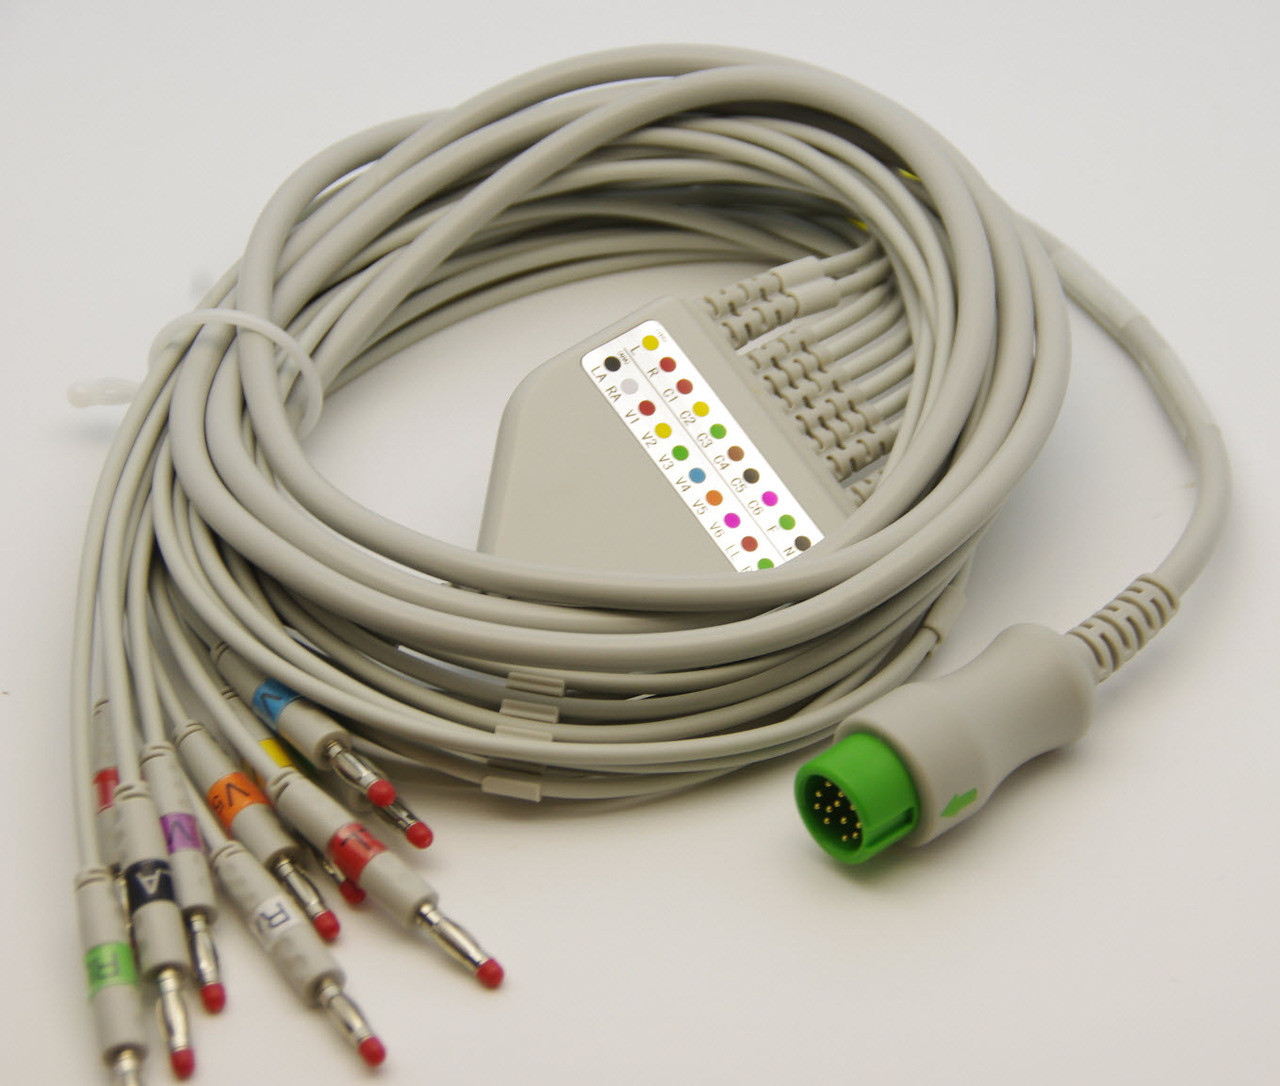 ECG/EKG CABLE FOR MINDRAY BENEVIEW 10 LEADS, 4MM BANANA